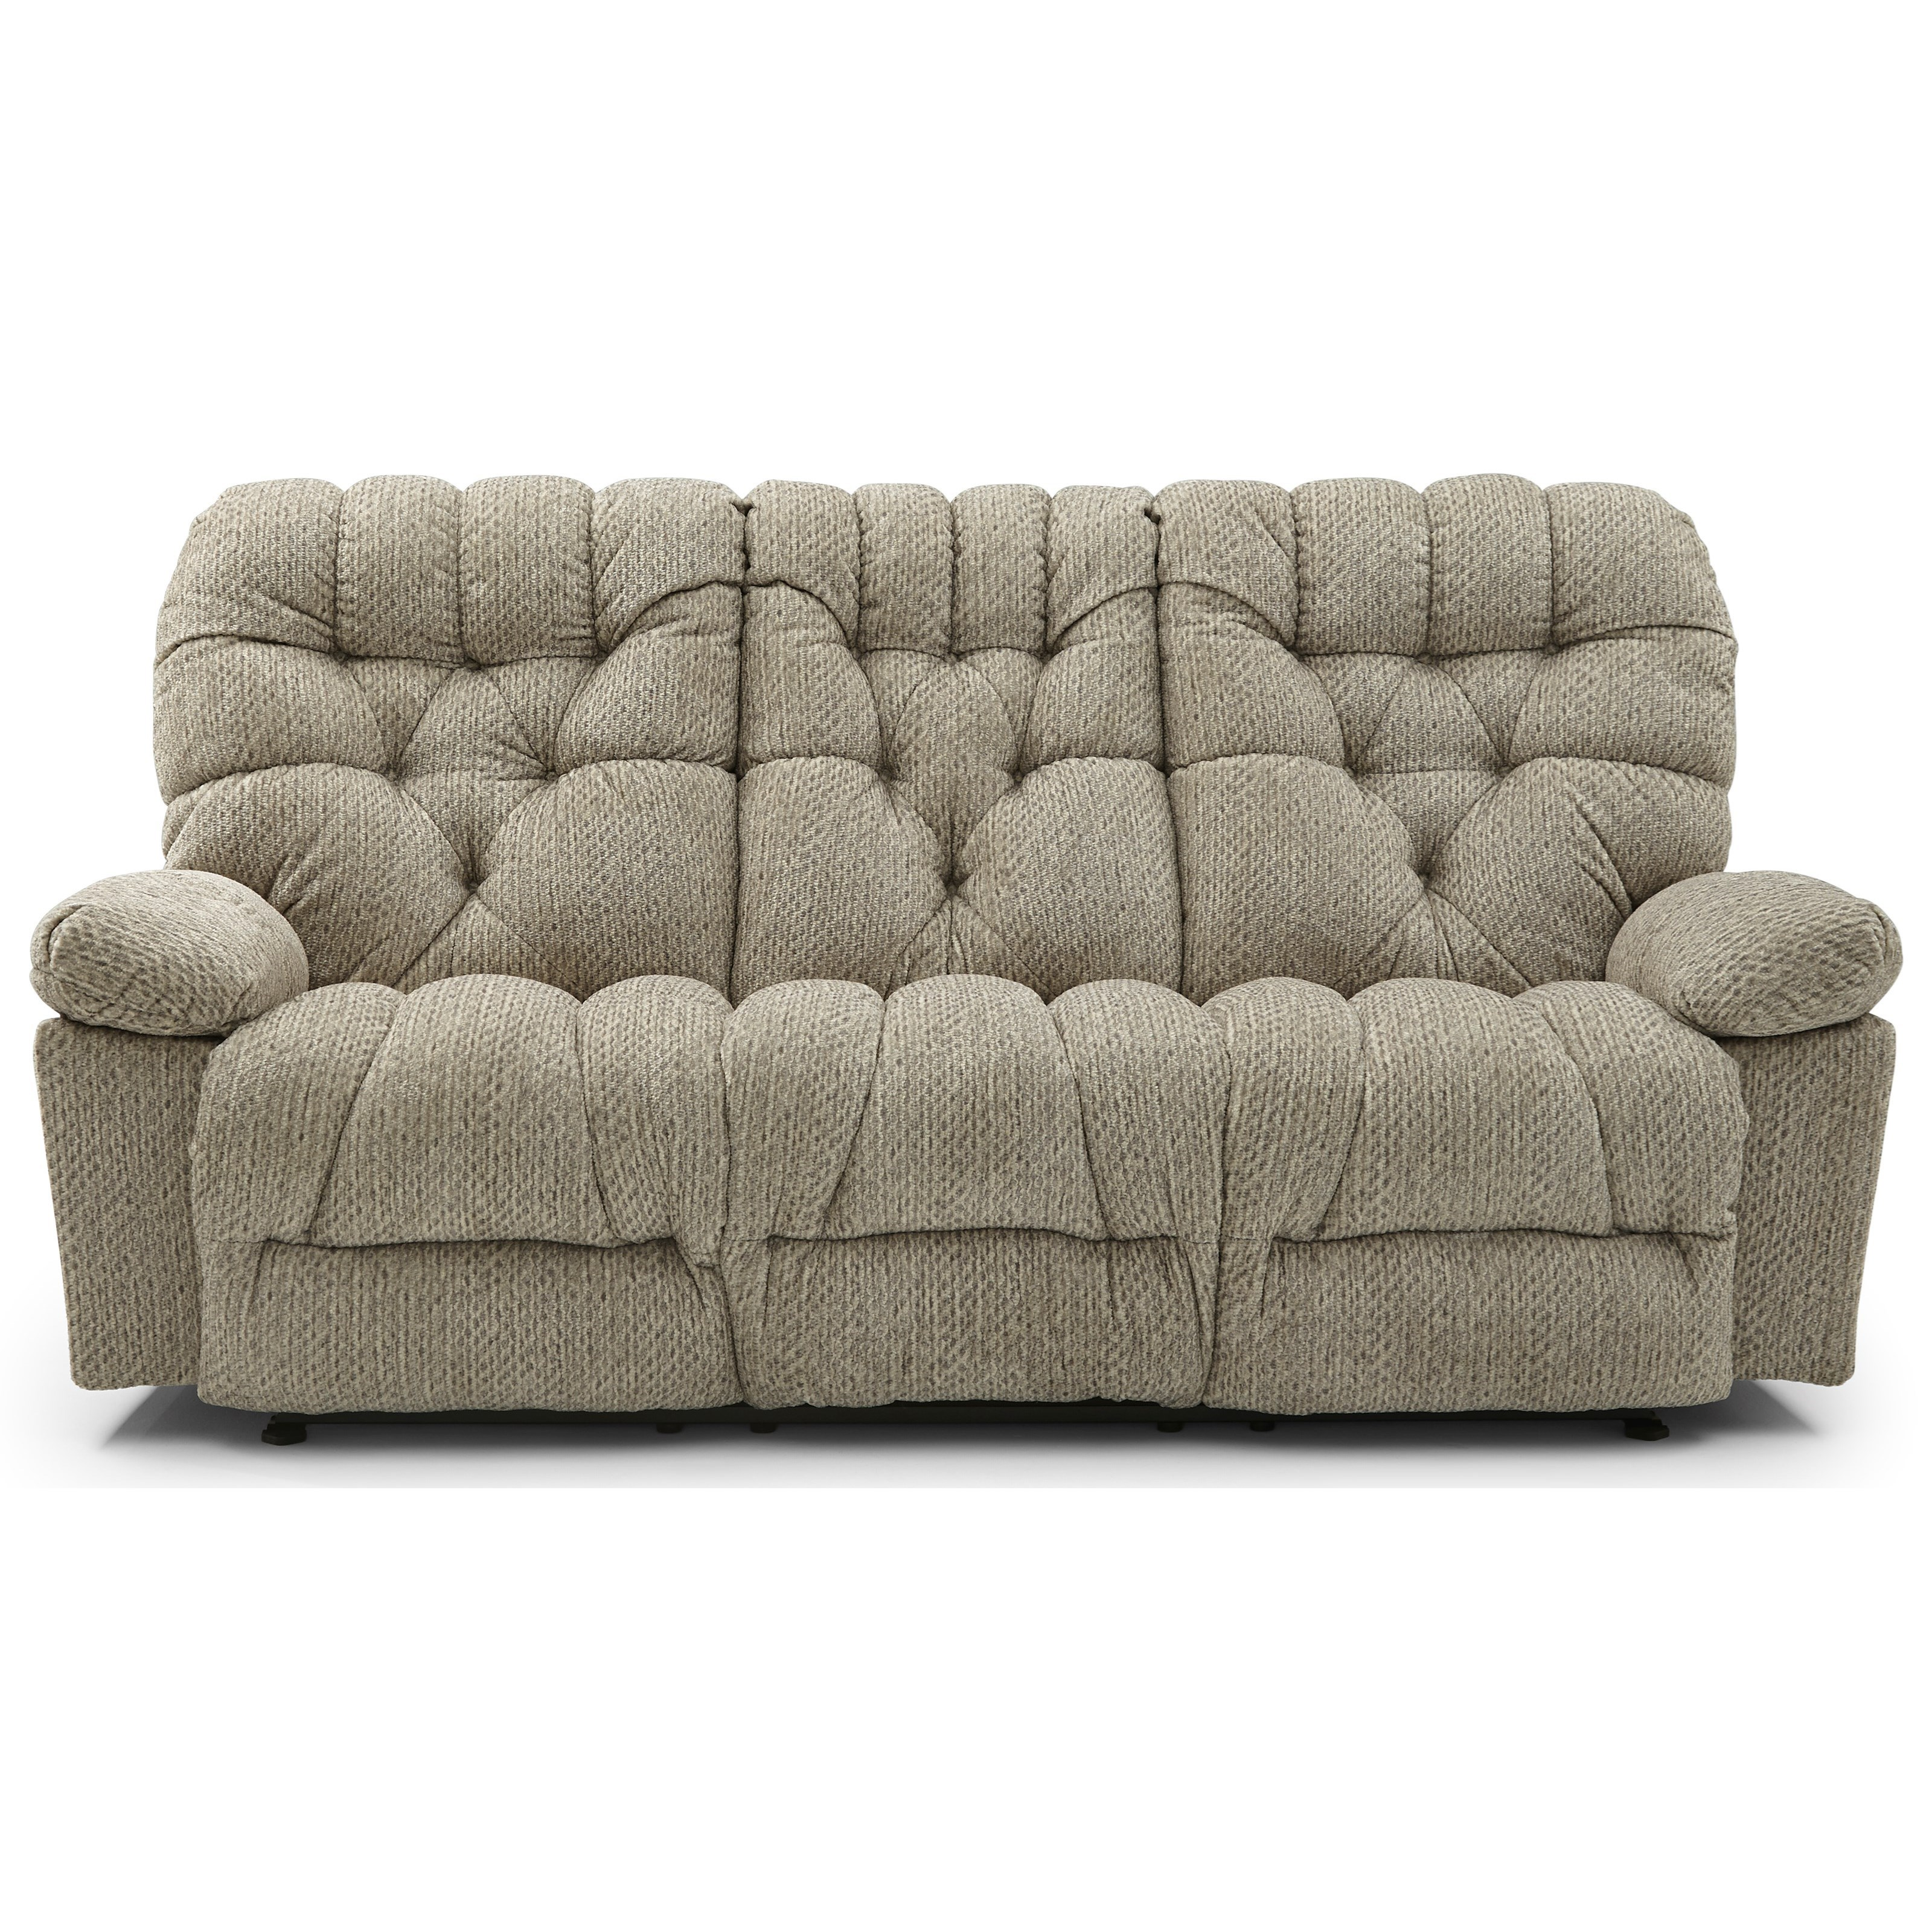 Bolt Power Reclining Sofa by Best Home Furnishings at Best Home Furnishings